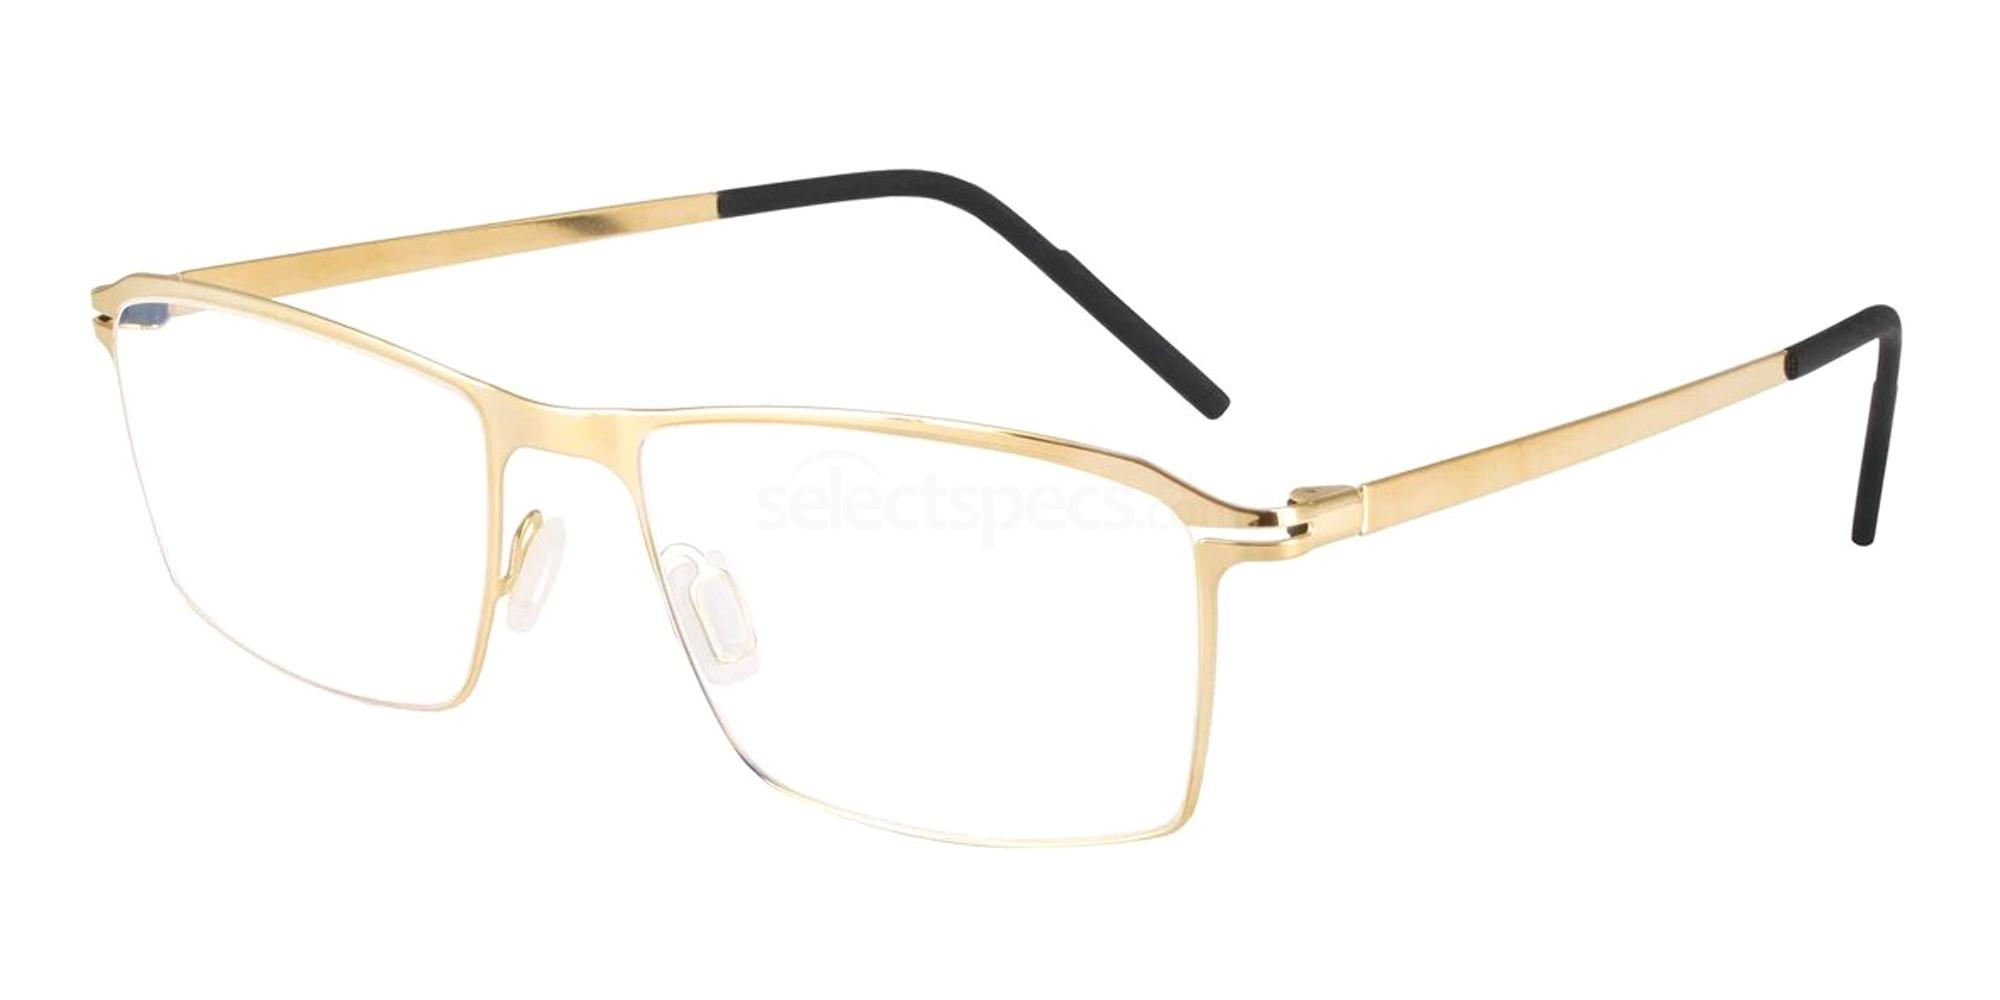 REG/KER1 KERID GOLD EDITION Glasses, Reykjavik Eyes Black Label